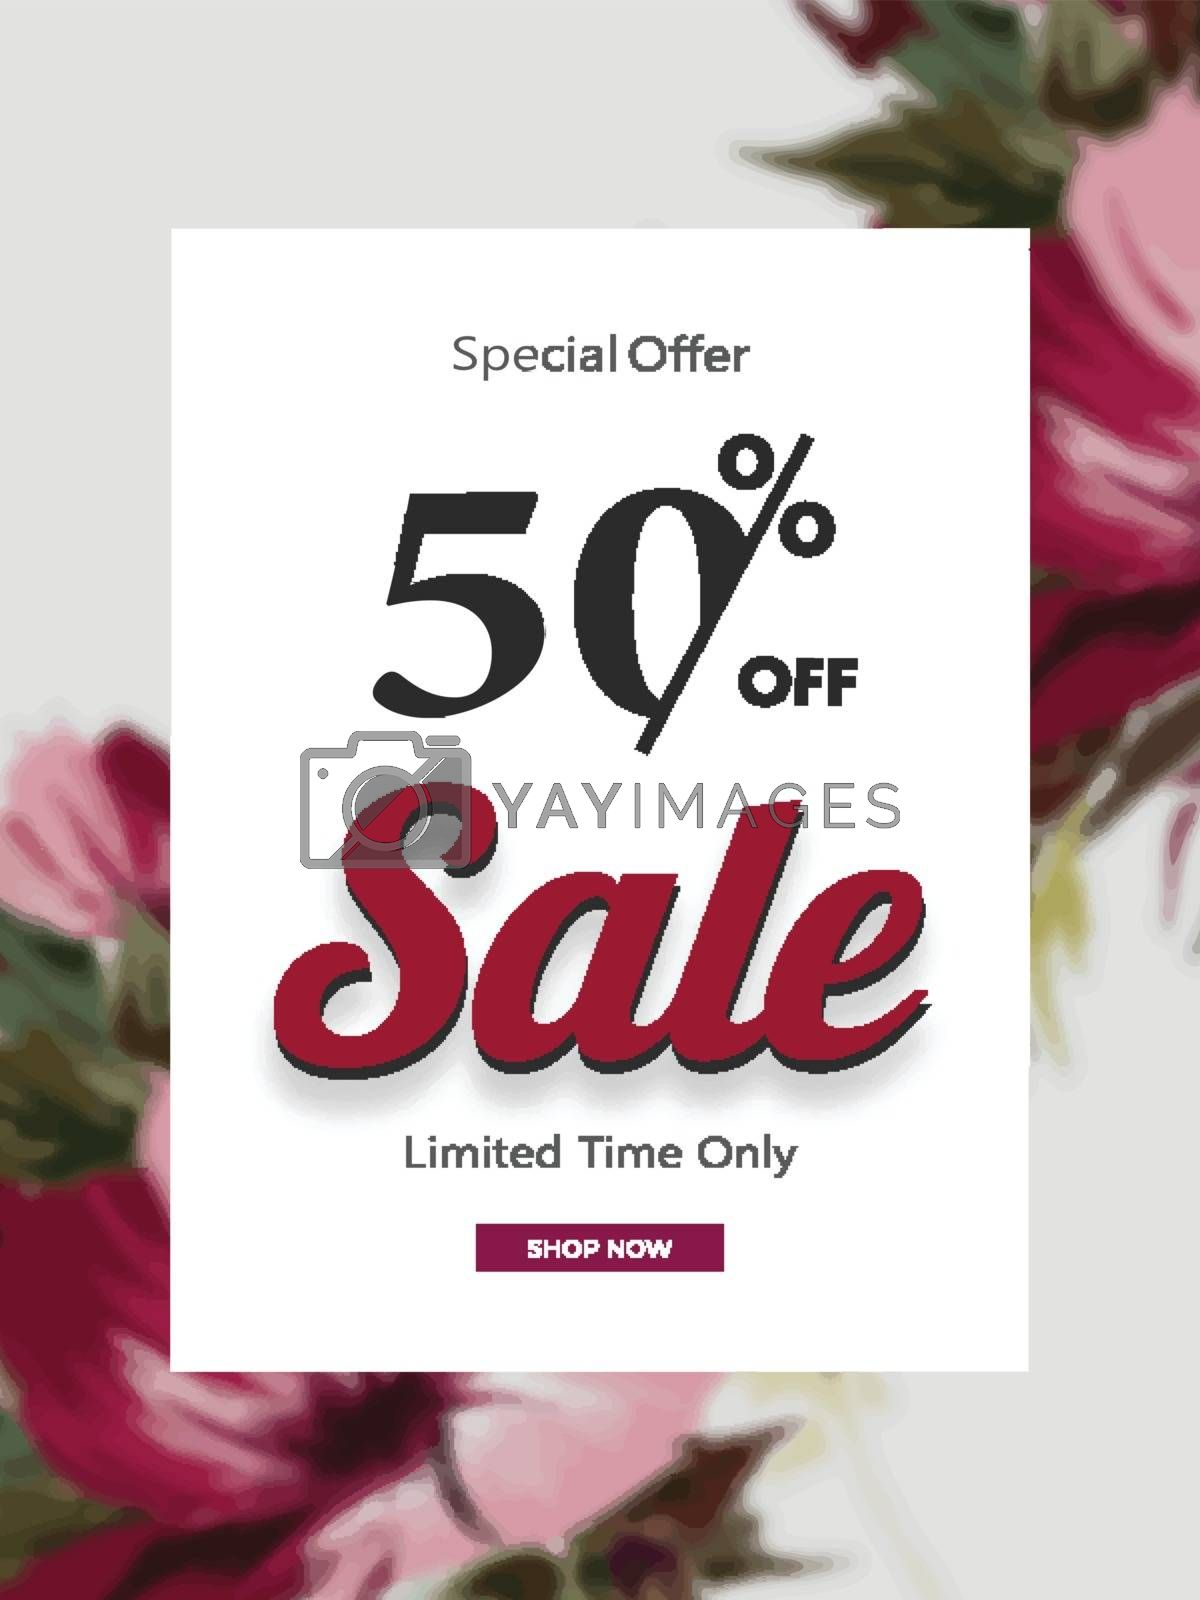 Royalty free image of Sale template or flyer design with 50% discount offer on flowers by aispl